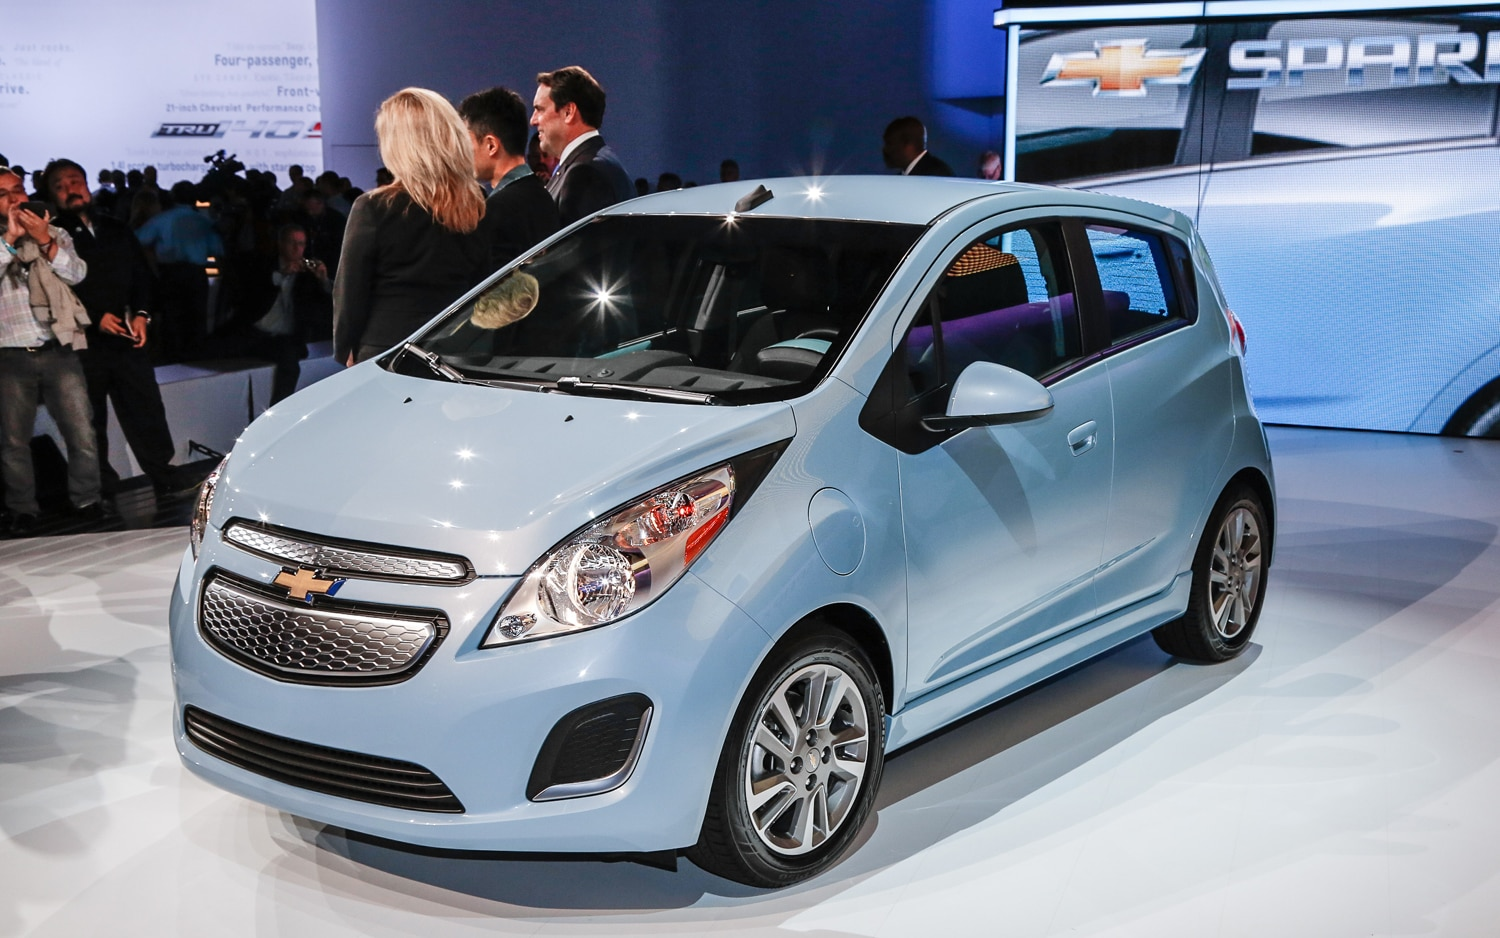 2014 Chevrolet Spark EV Front Left View1